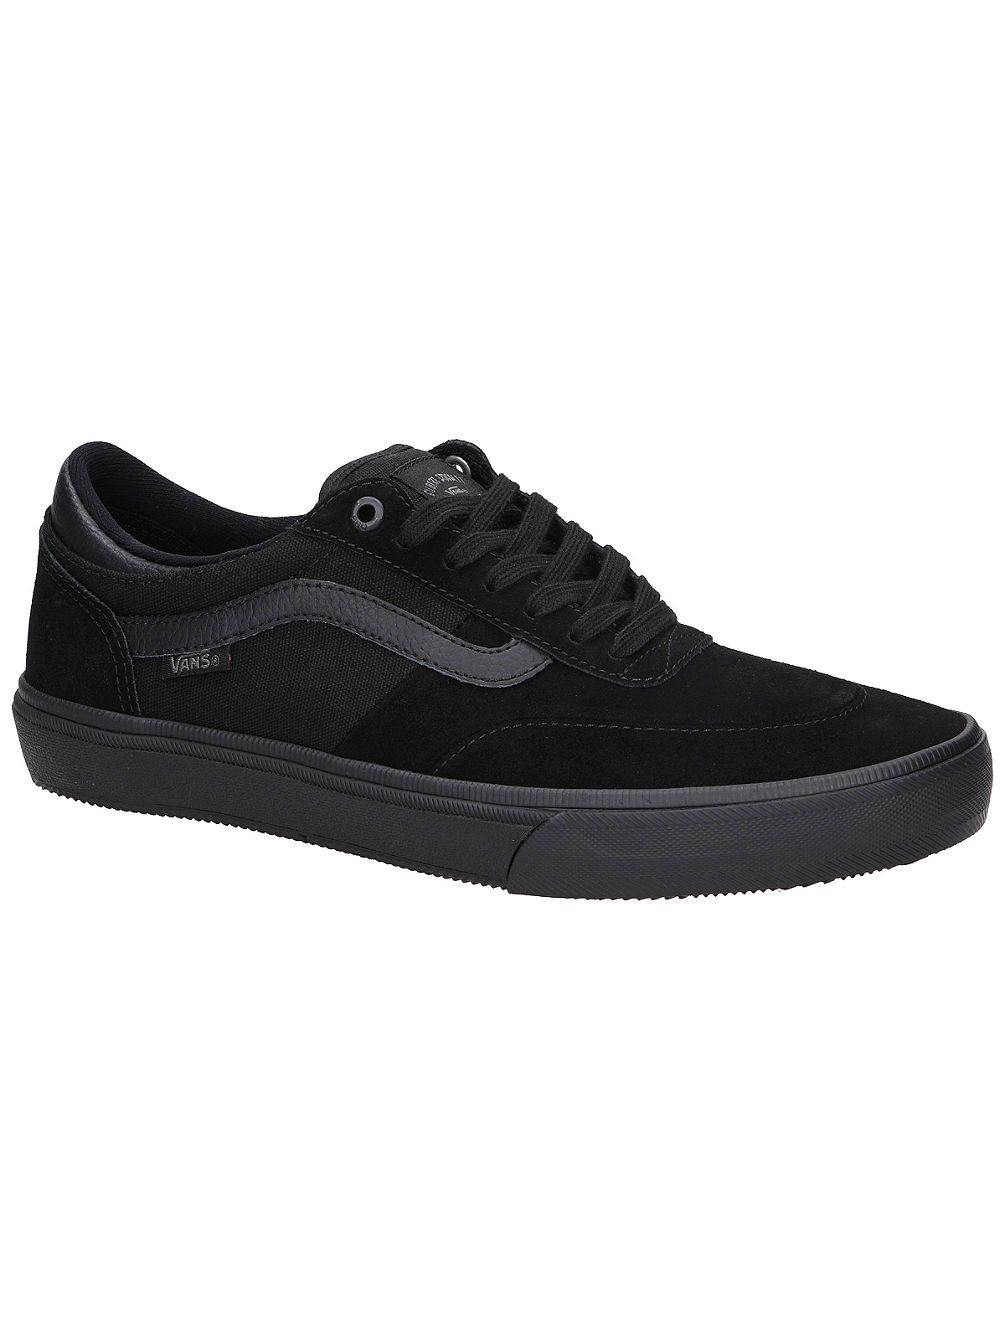 a11abb205e Buy Vans Suede Gilbert Crockett 2 Pro Skate Shoes online at Blue Tomato